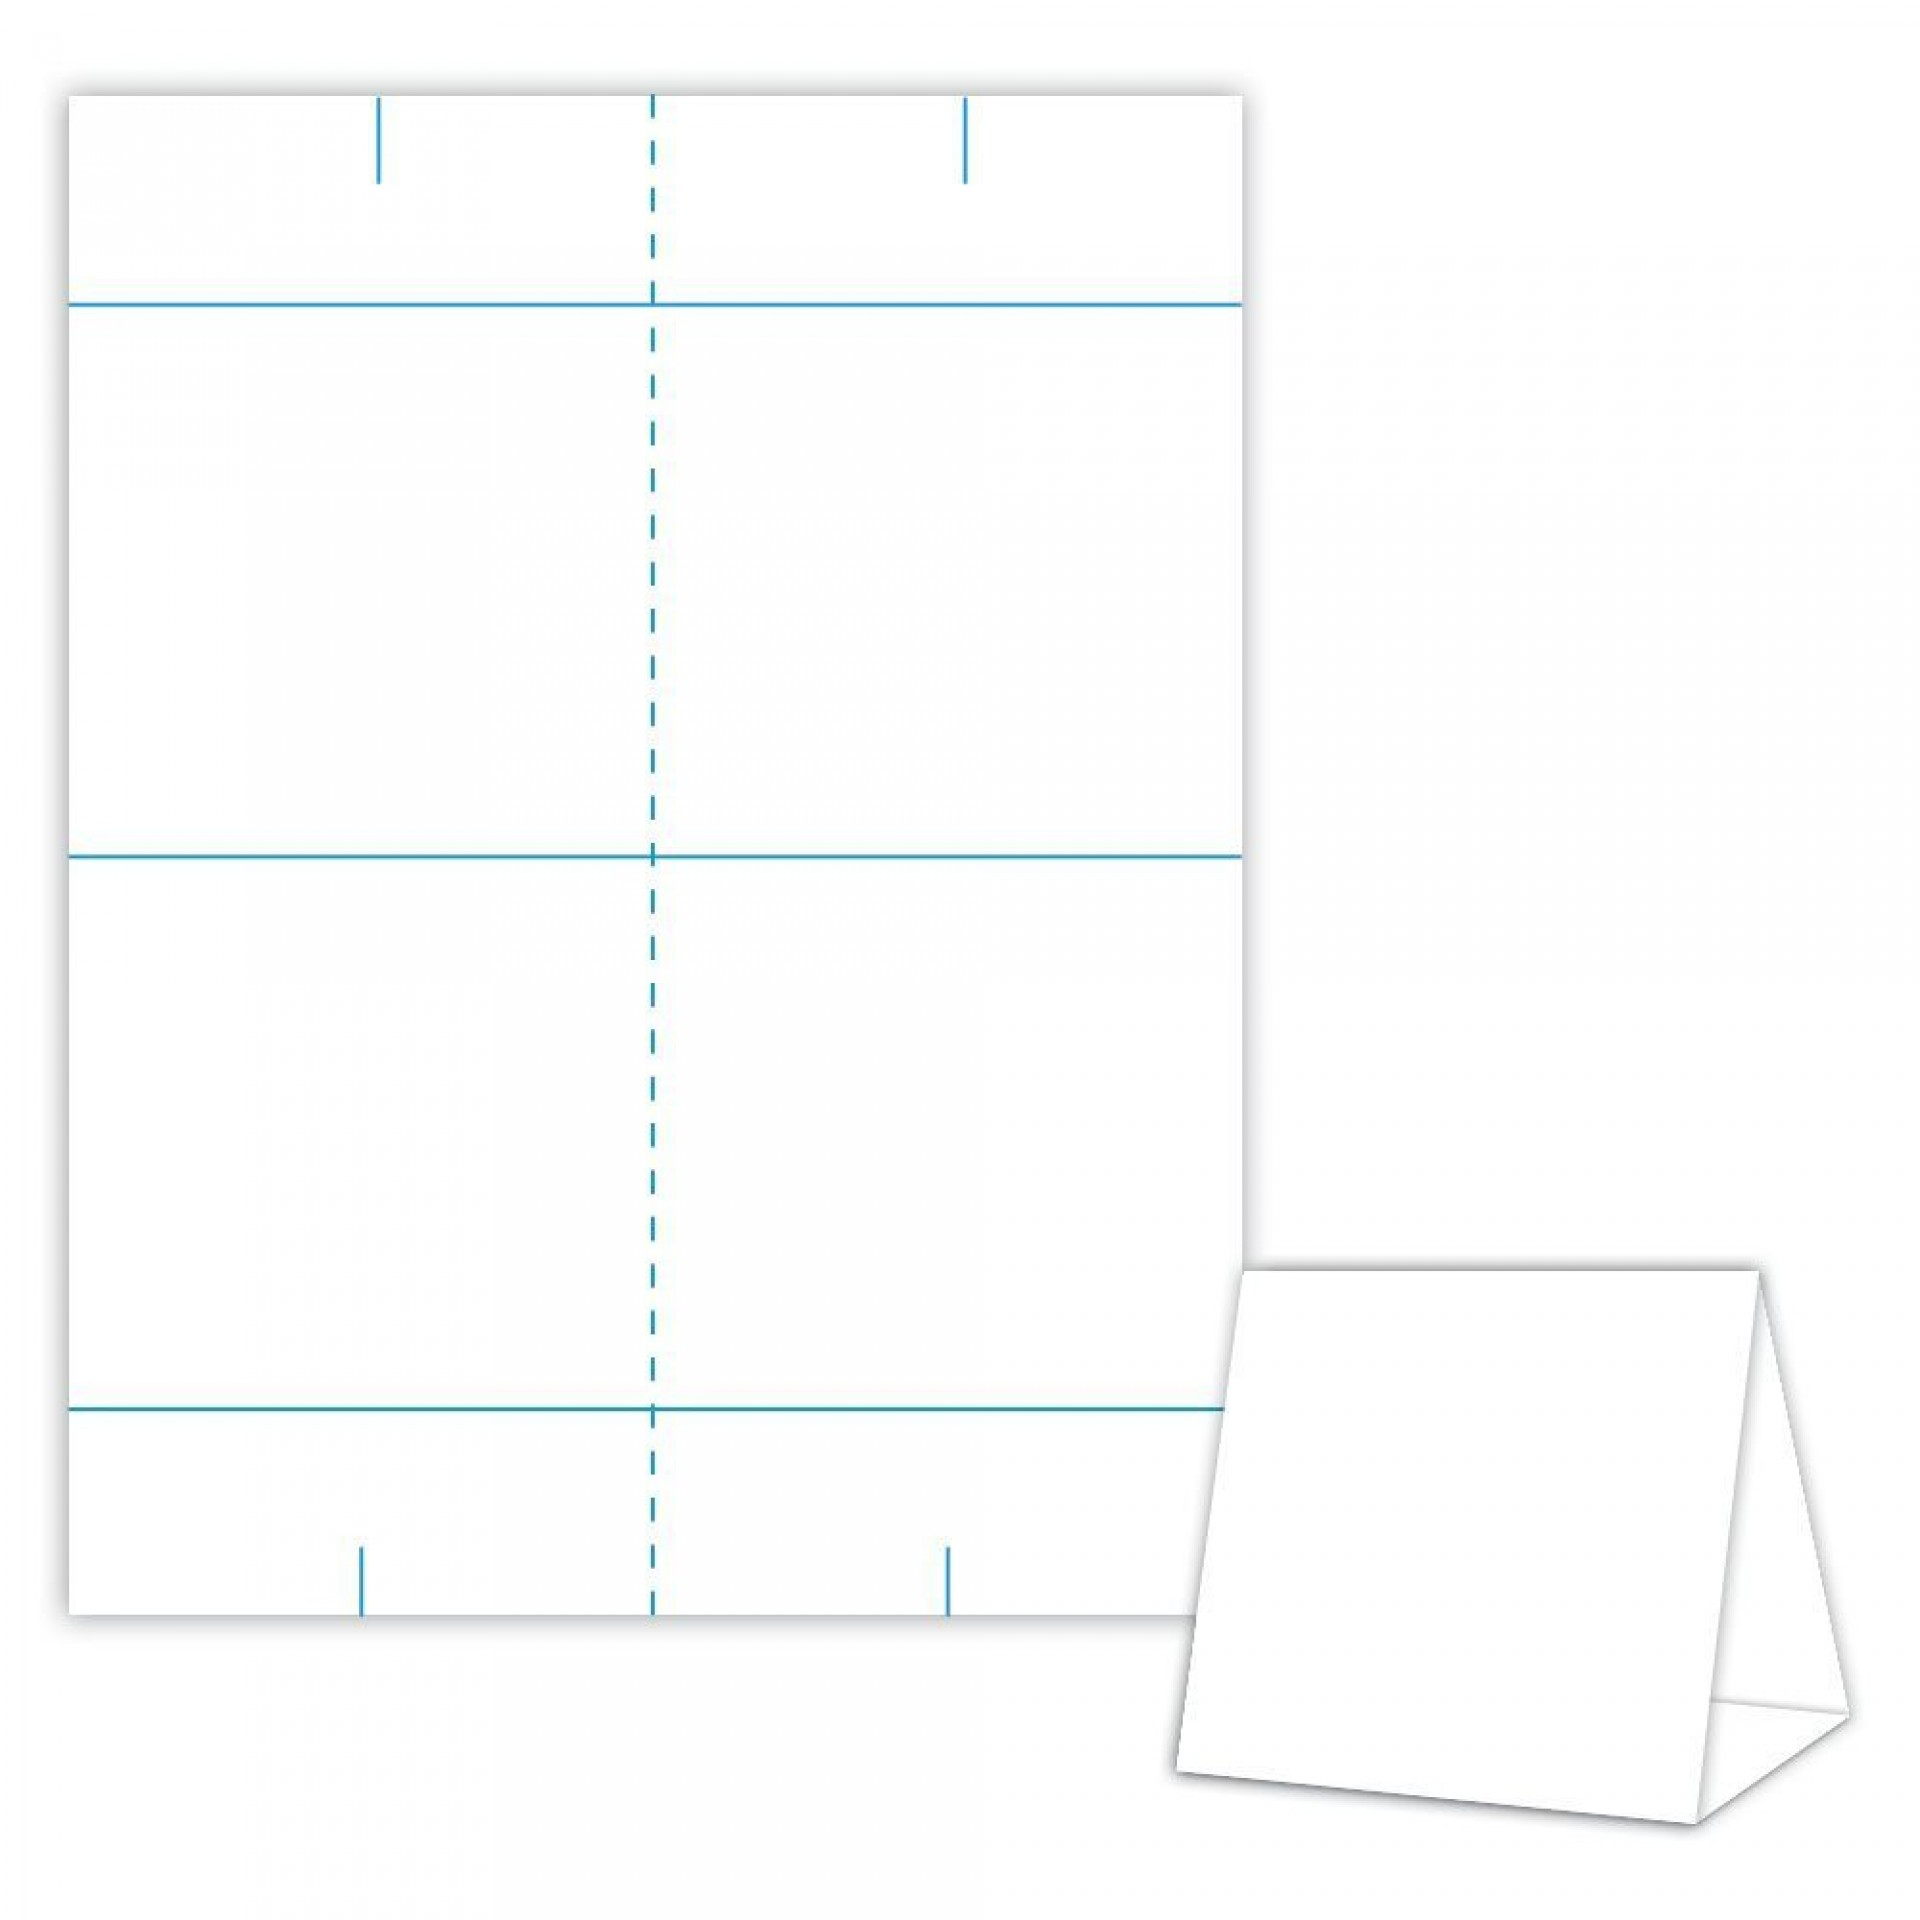 001 Impressive Tri Fold Table Tent Template Idea  Card Word Free1920